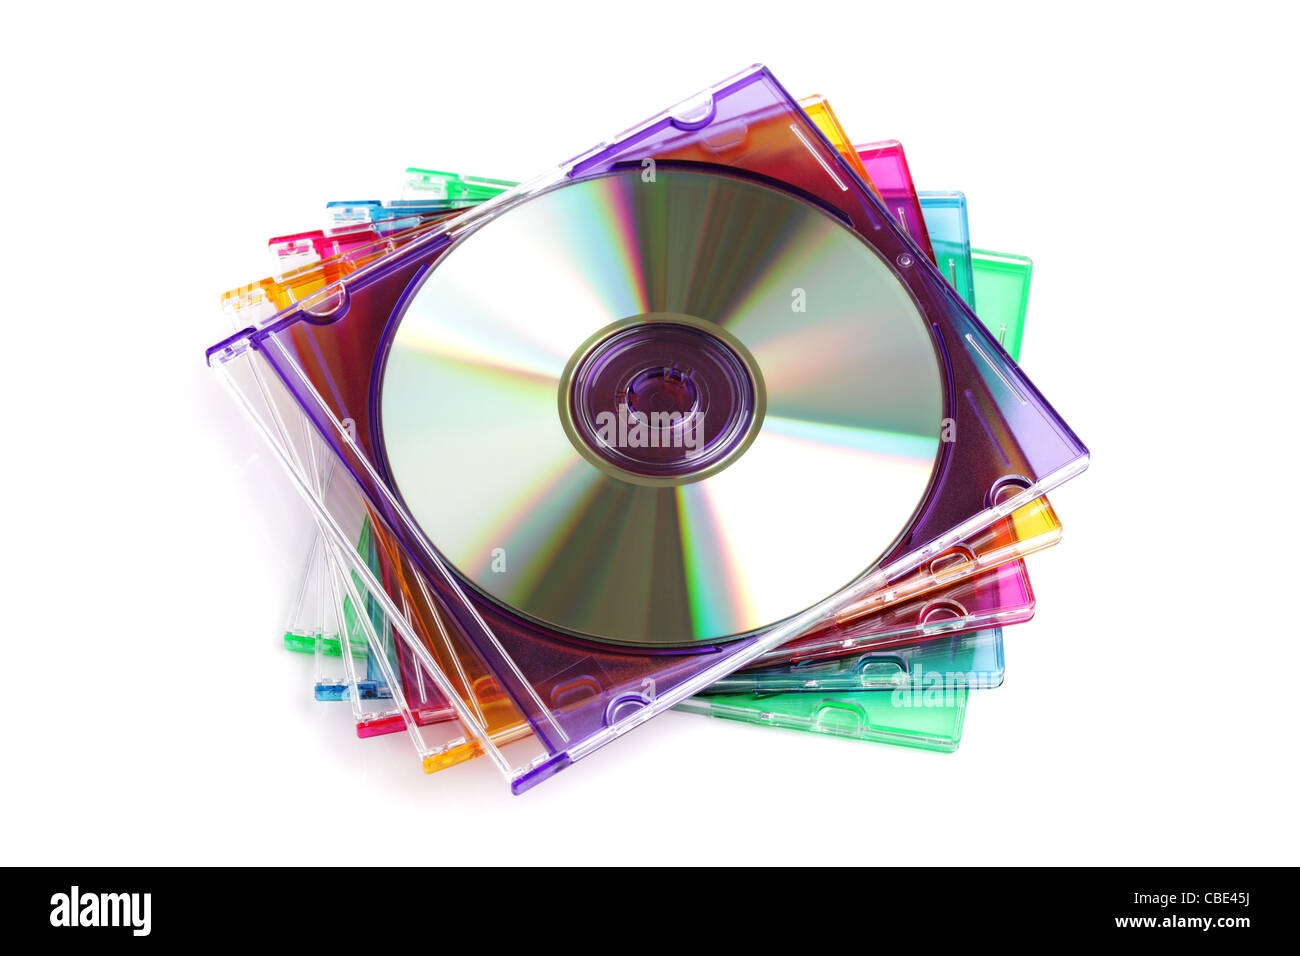 CD or DVD case - Stock Image